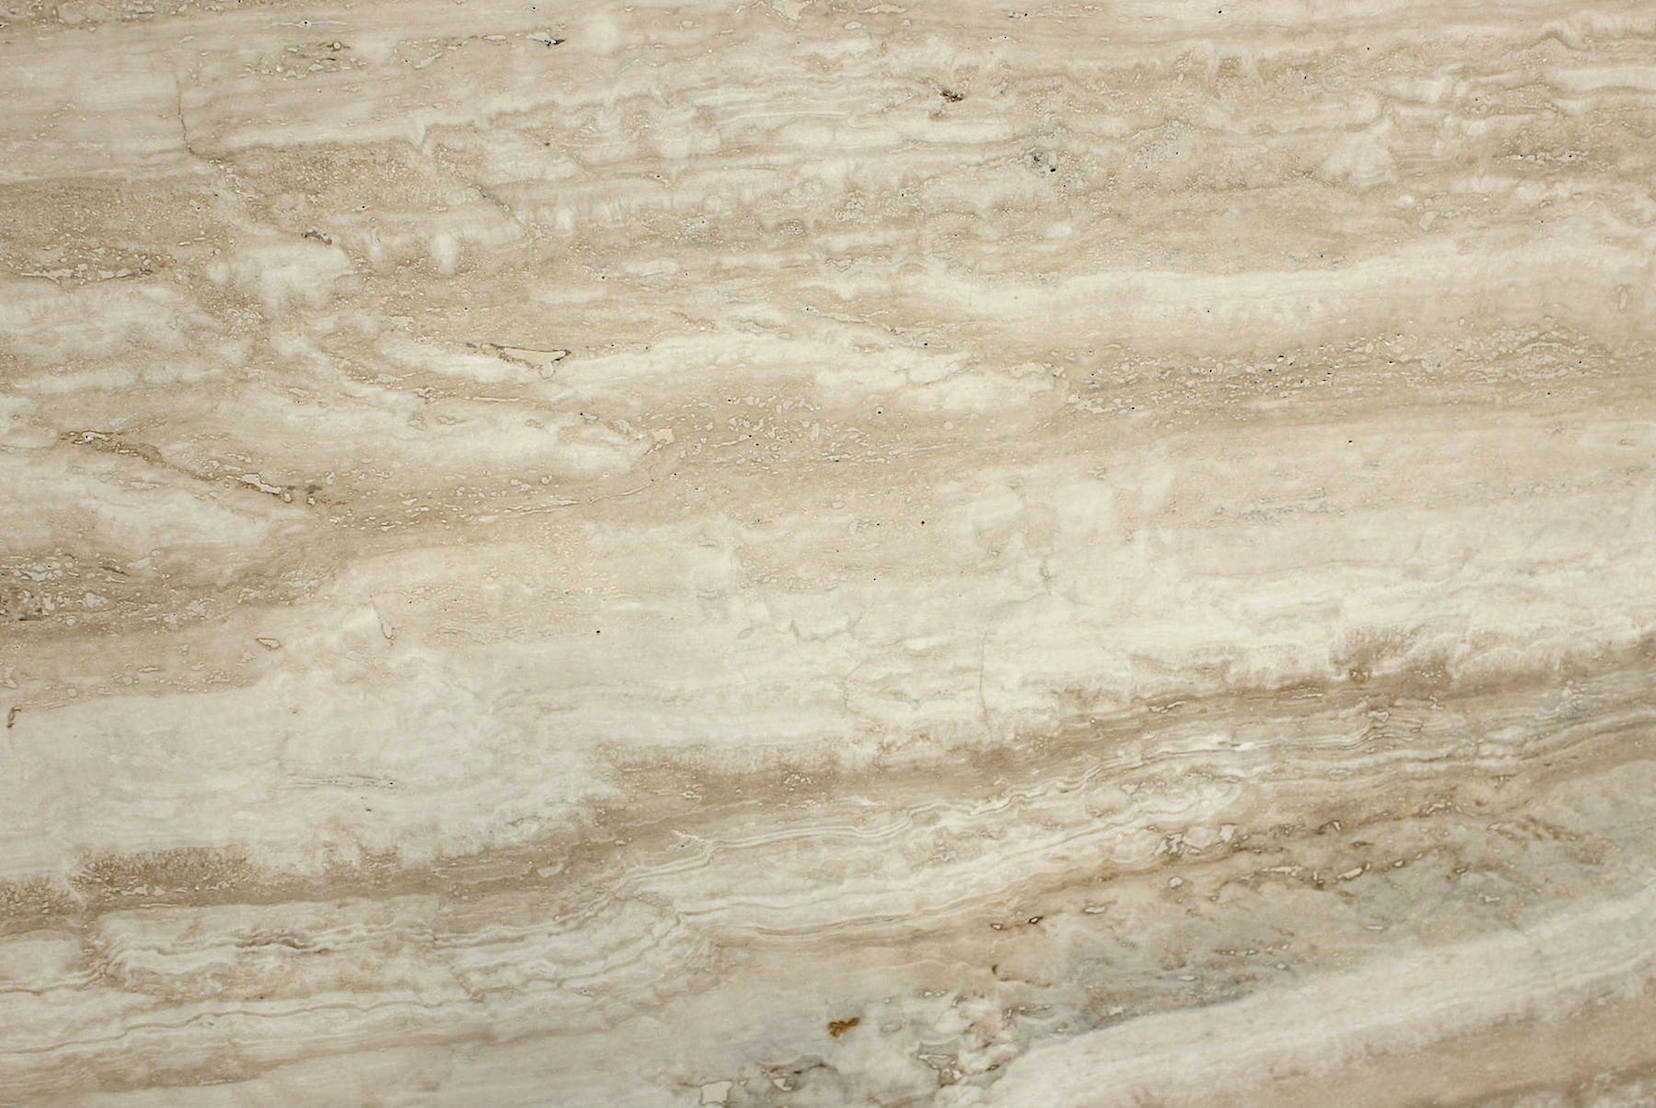 Travertine Alabastrino Marble Trend Marble Granite Tiles Toronto Ontario